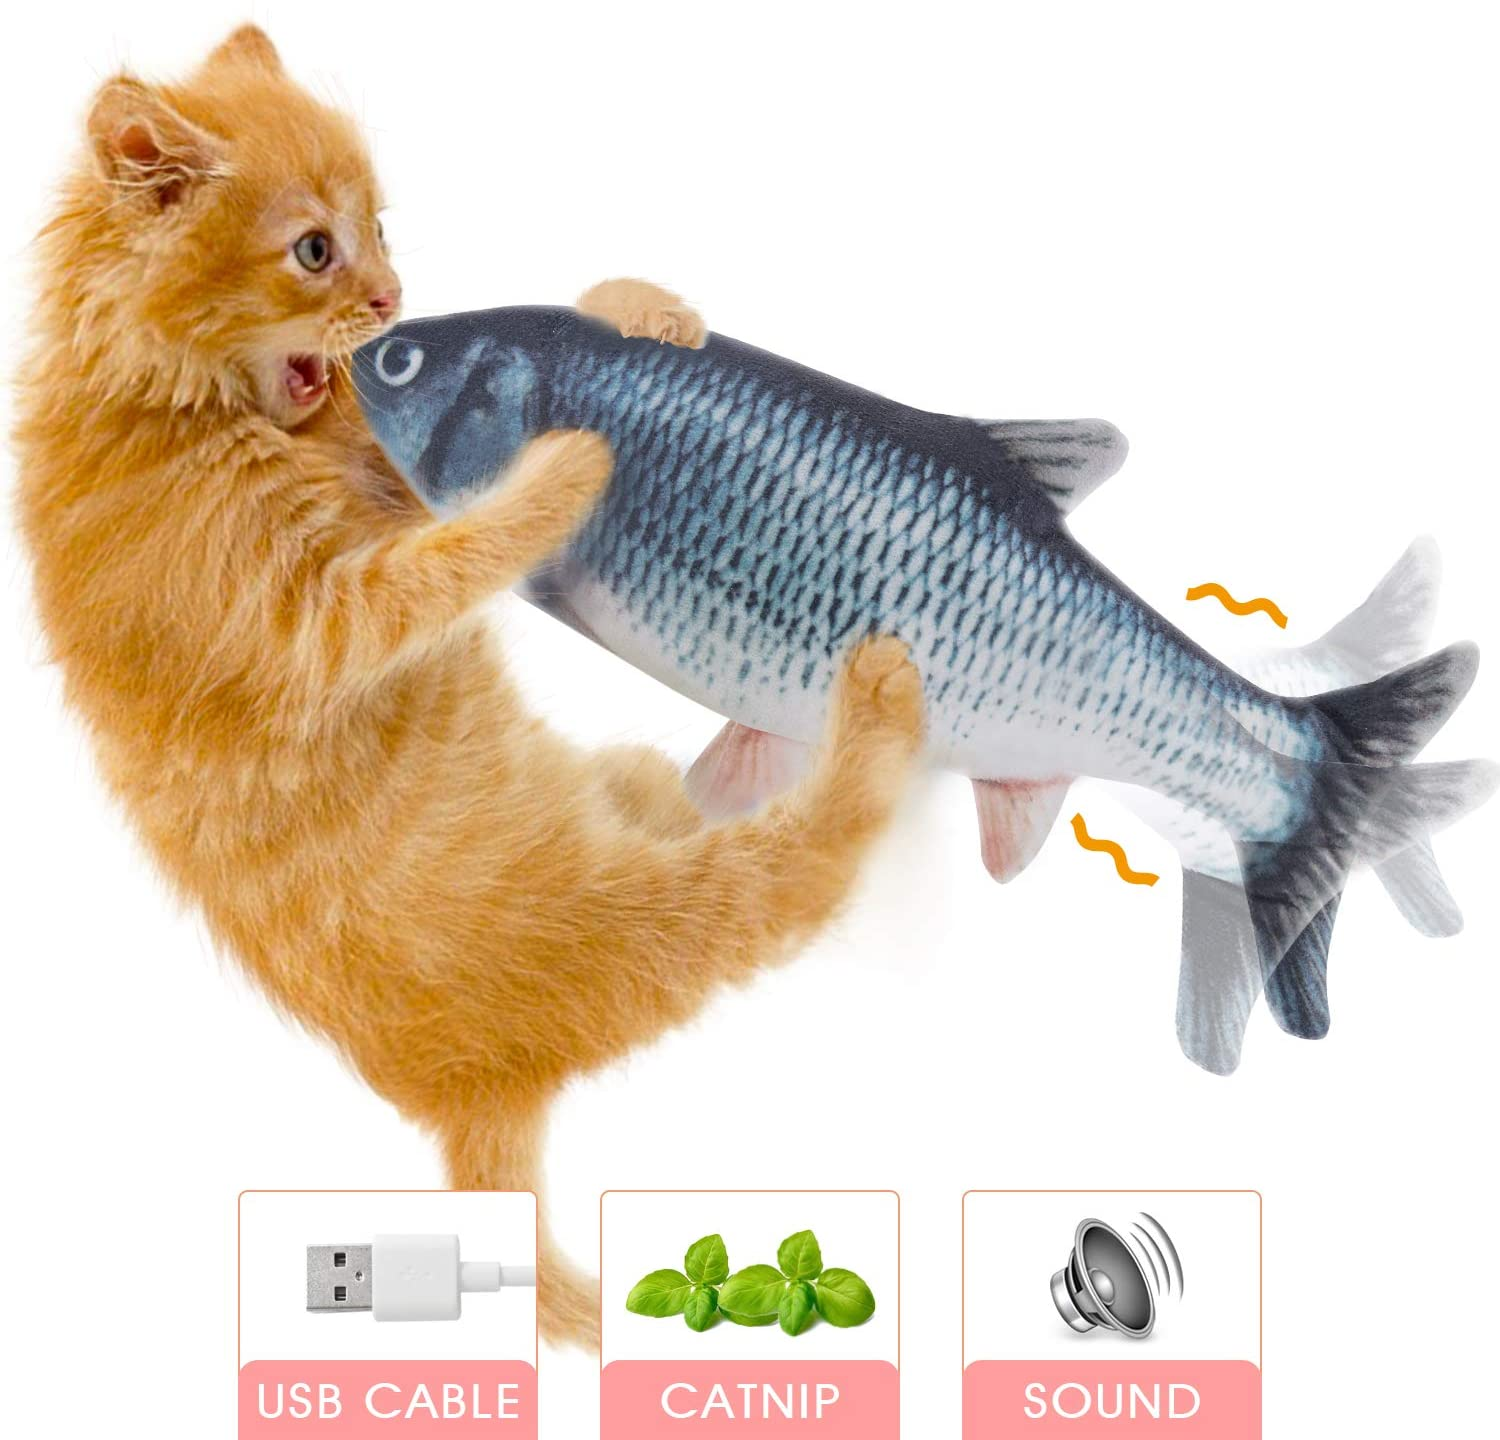 Hot Bee Electric Moving Fish Cat Toys - Realistic Flopping Indoor Interactive Cat Toy Kiker Catnip Toys for Cat Kitten Kitty Pets